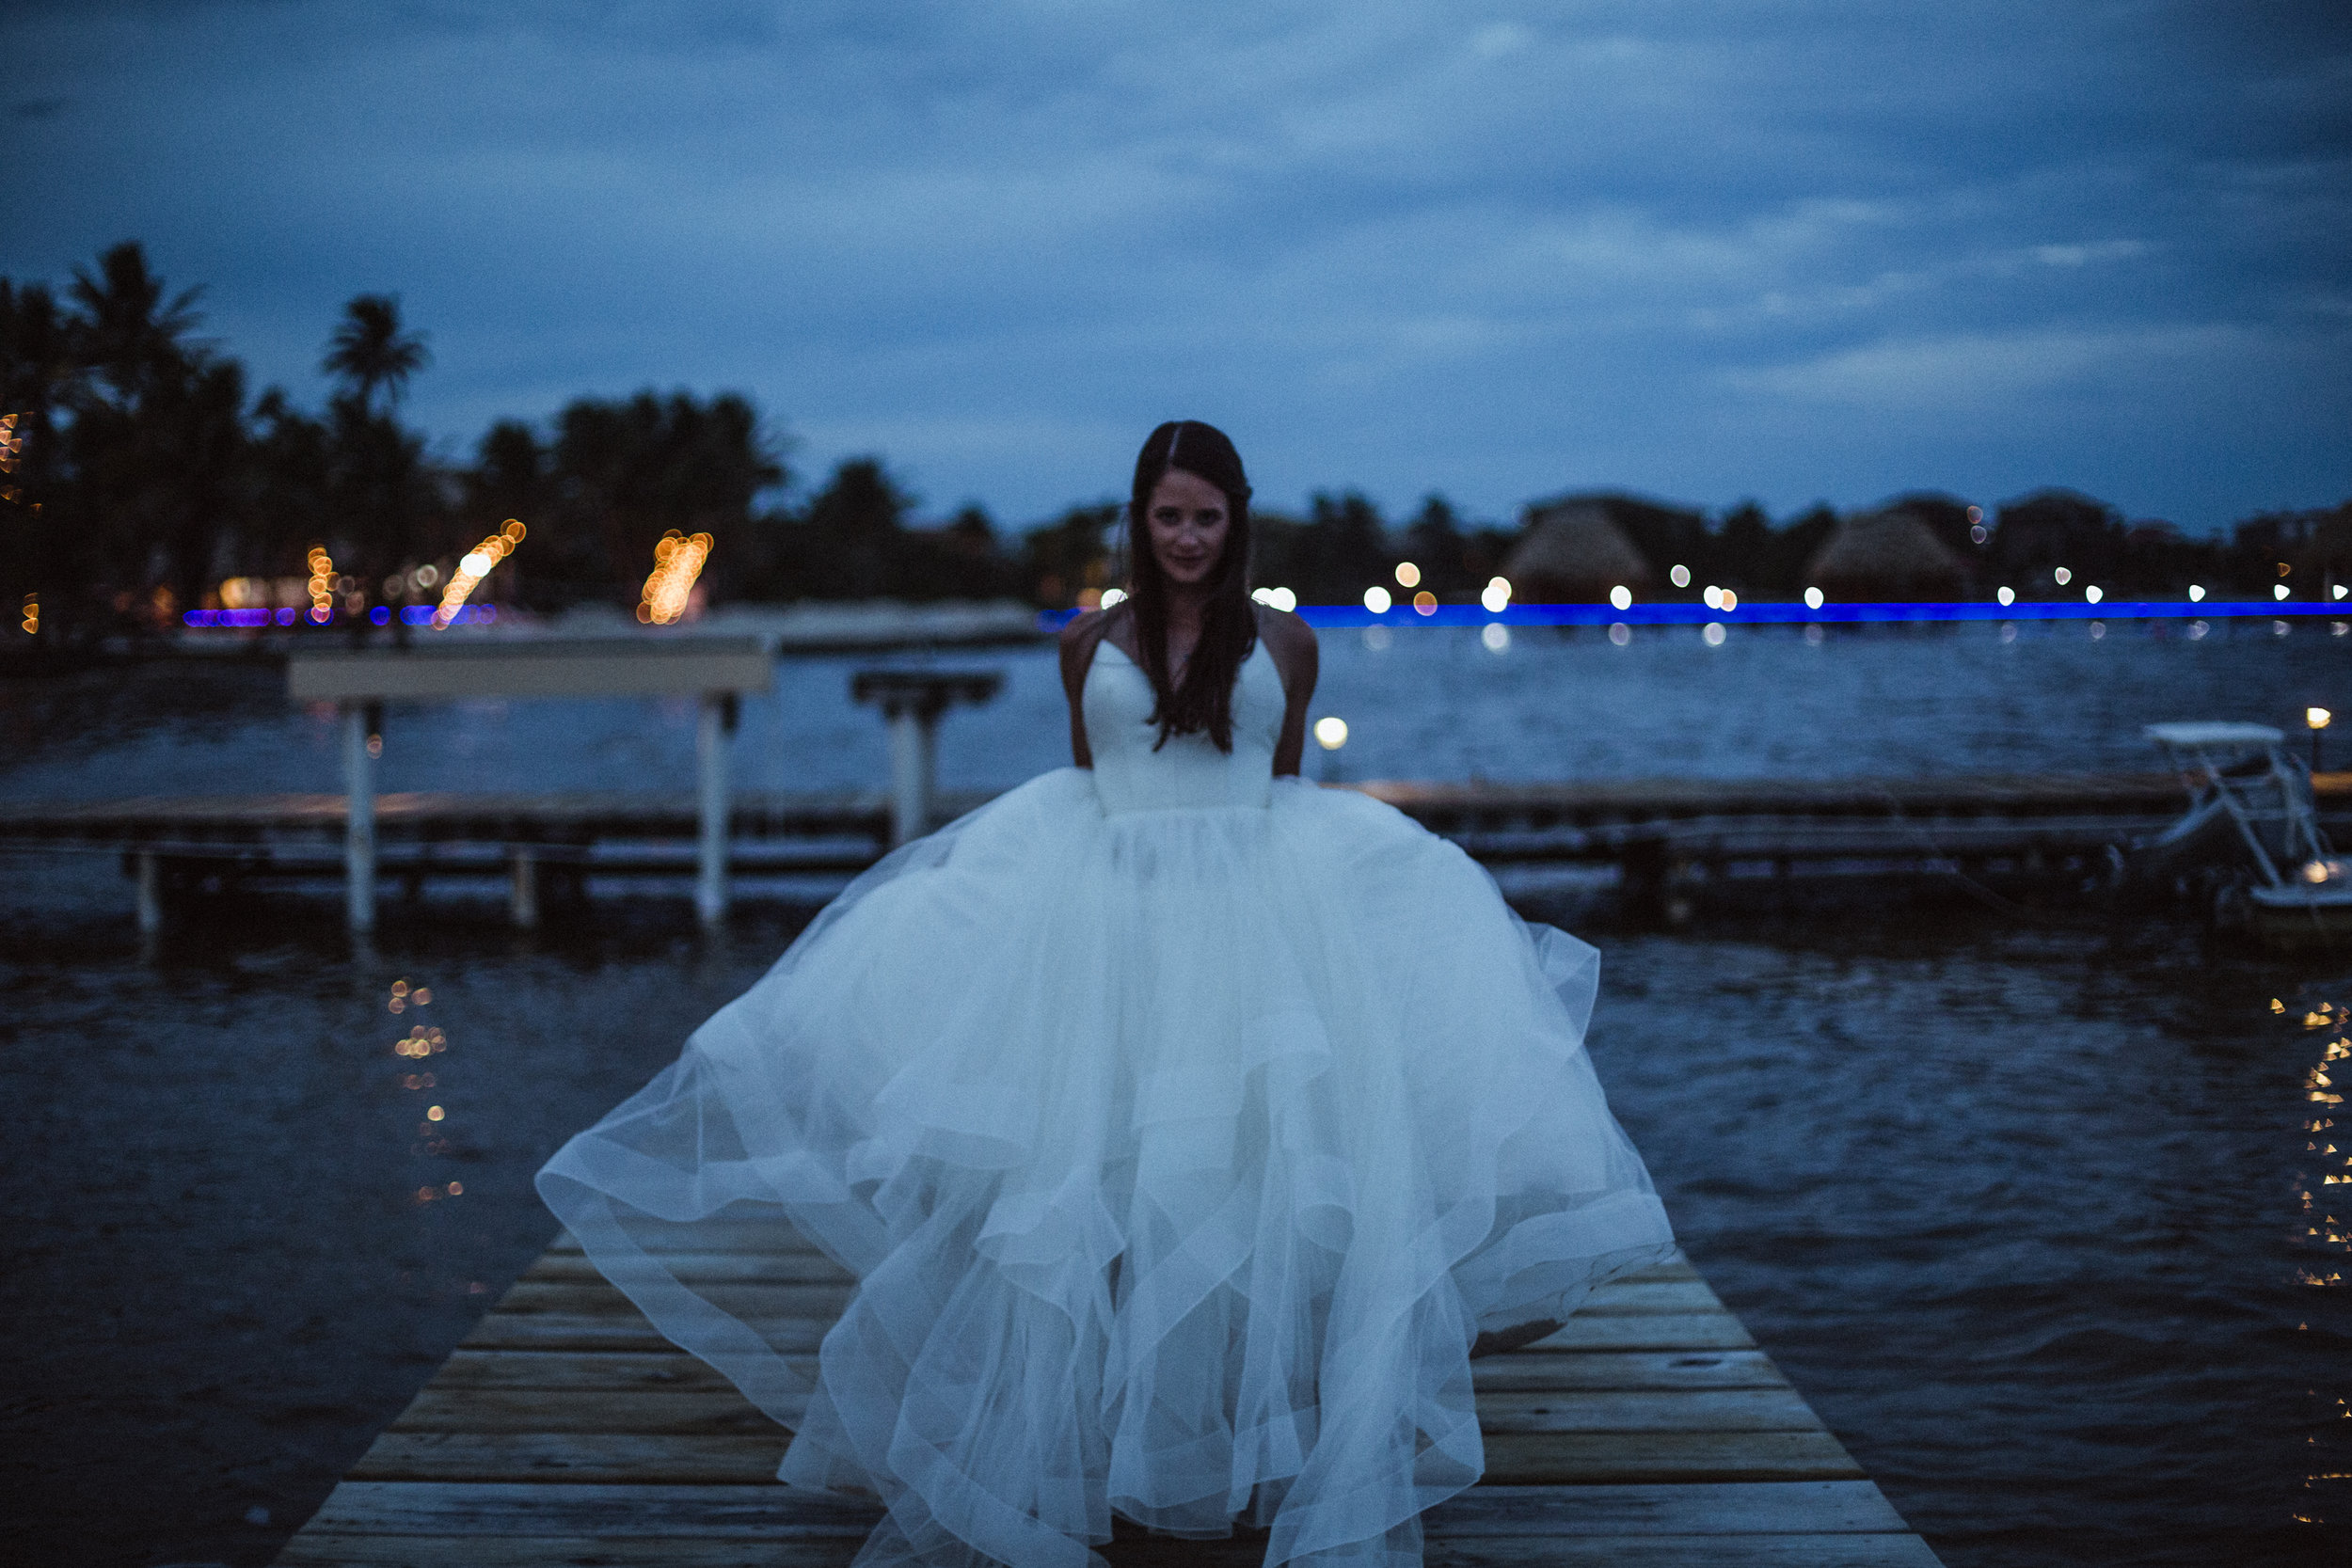 san-pescador-belize-wedding-christinemariephoto-j-k-152.jpg